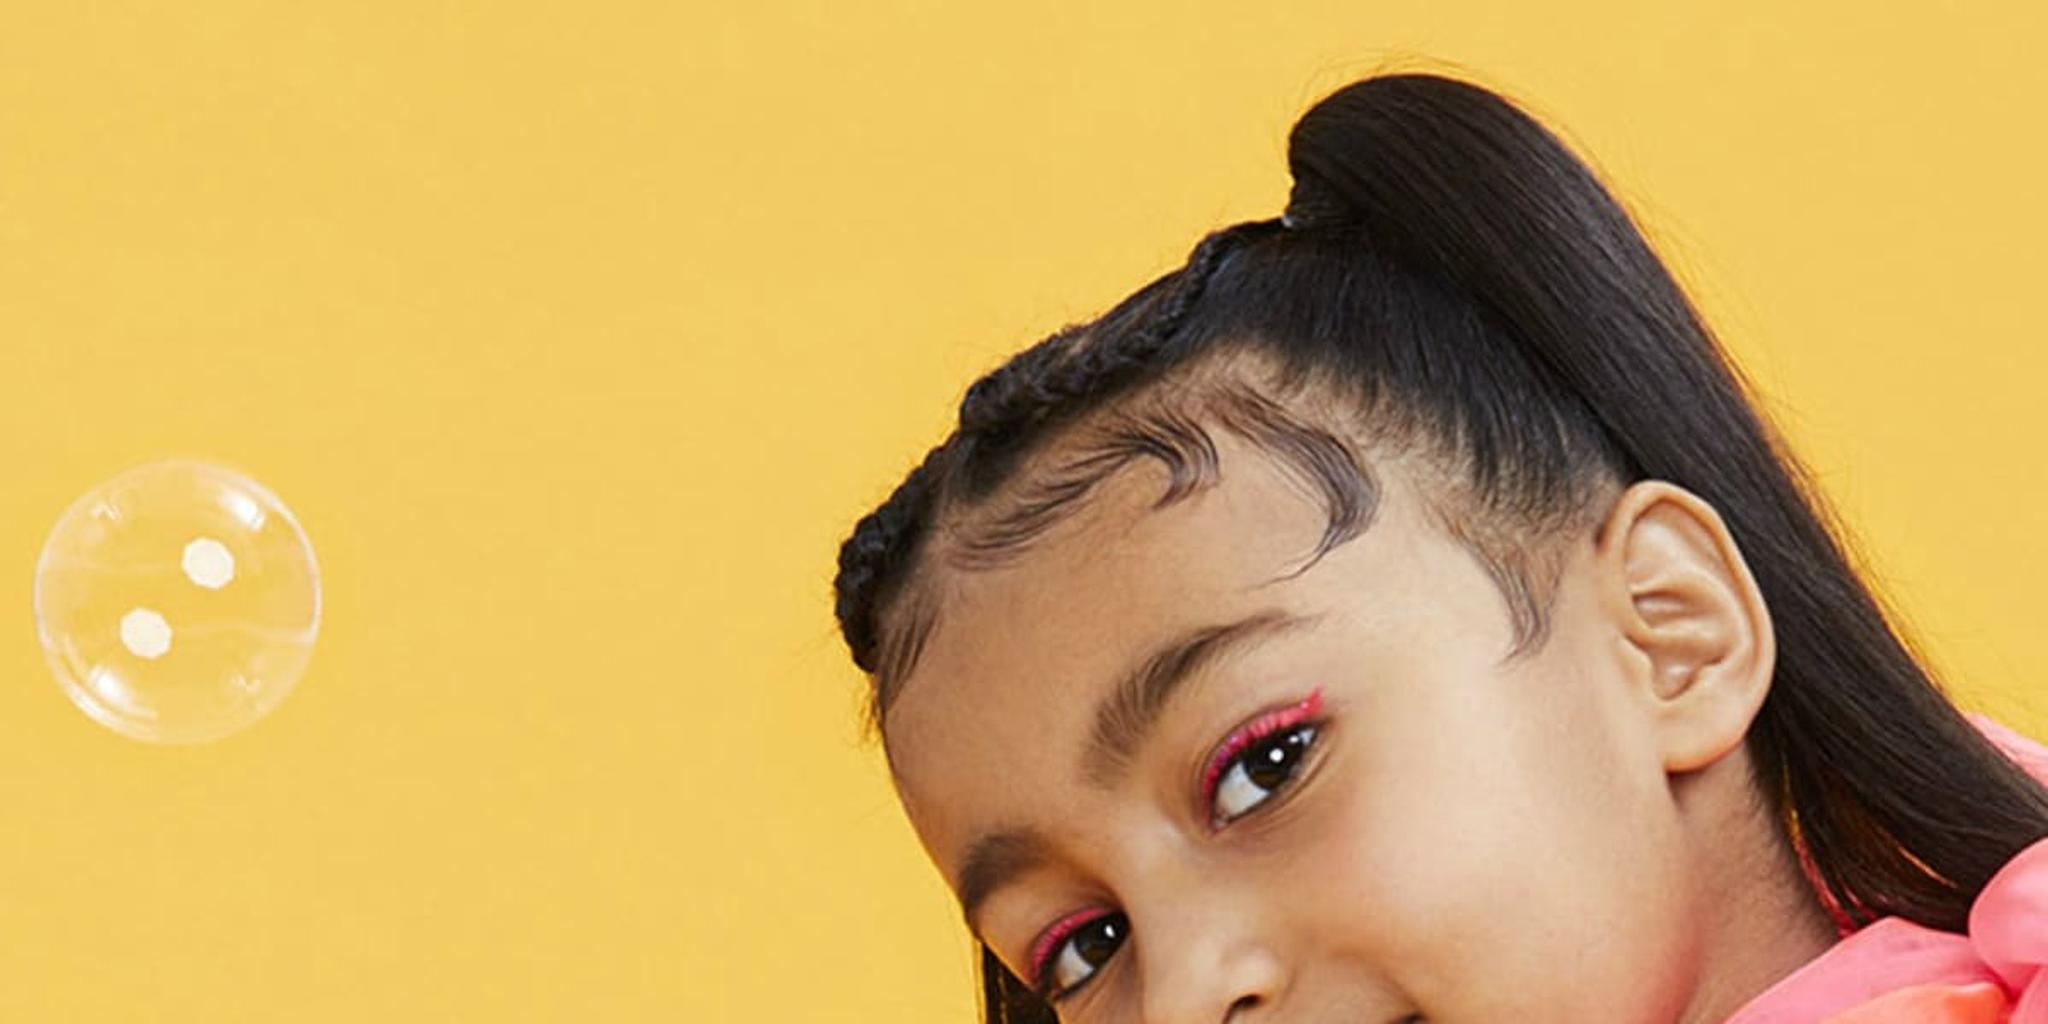 KUWTK: North West Celebrates Her 8th Birthday With Poop